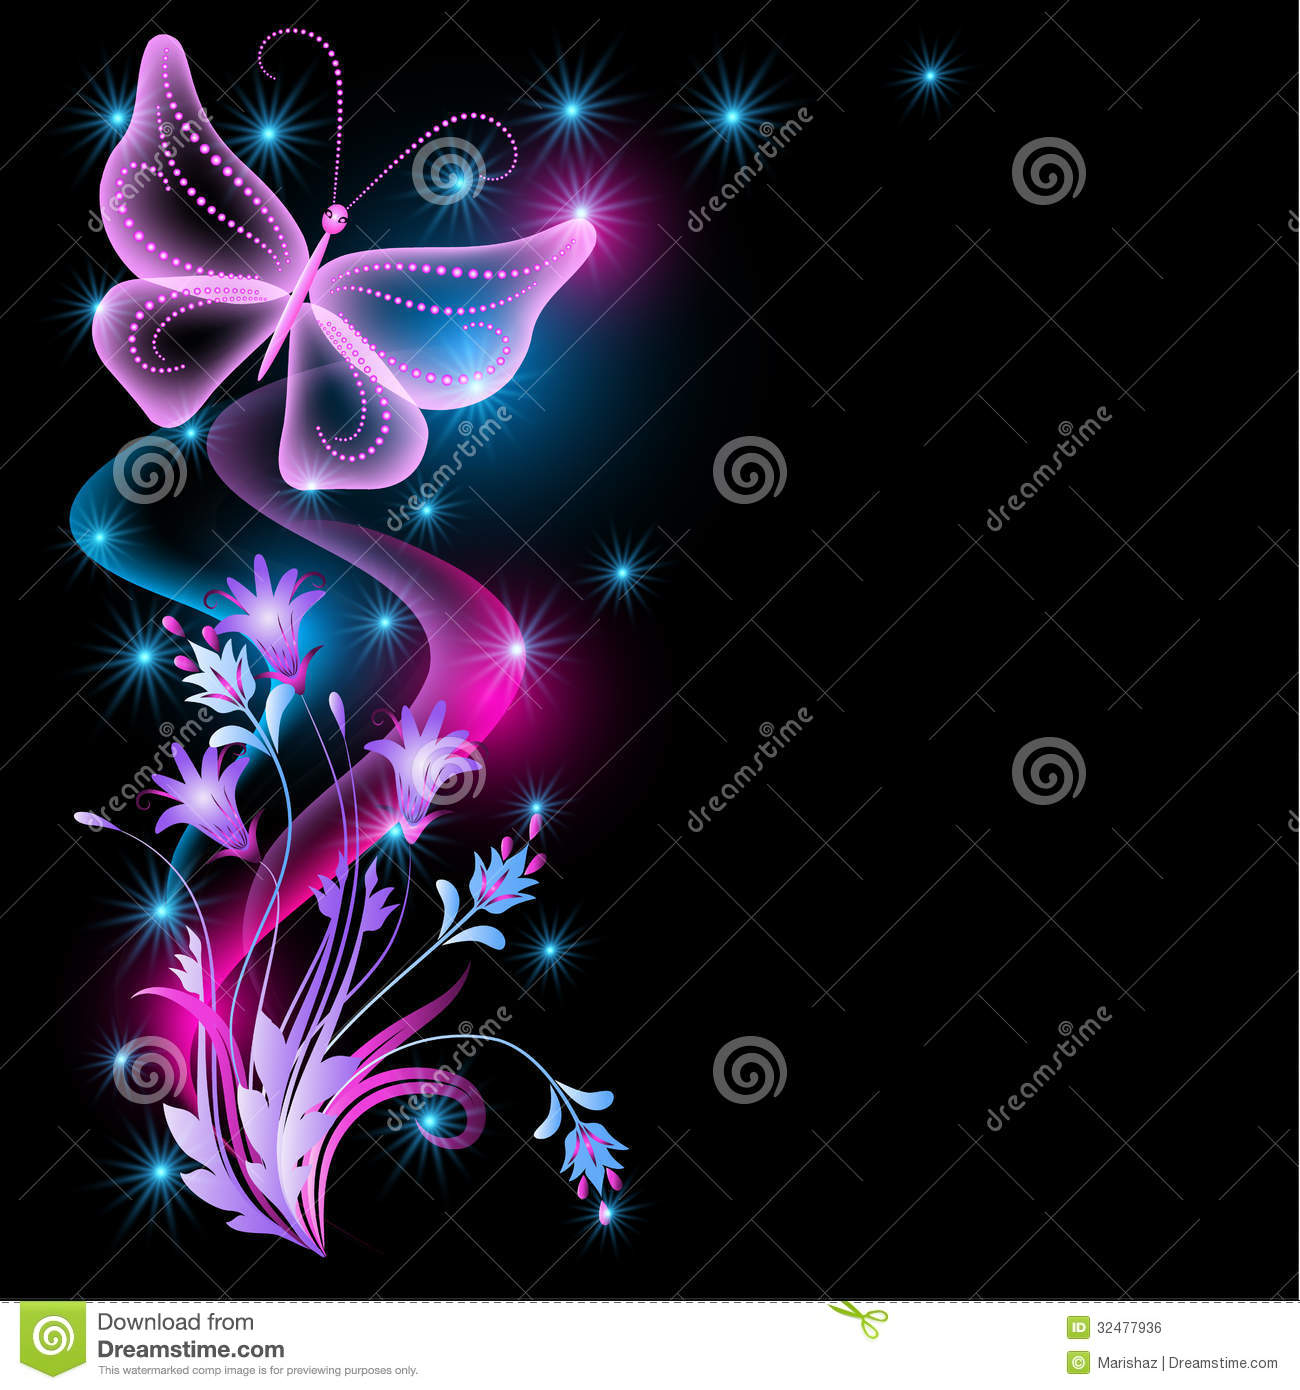 flowers and transparent butterfly royalty free stock image